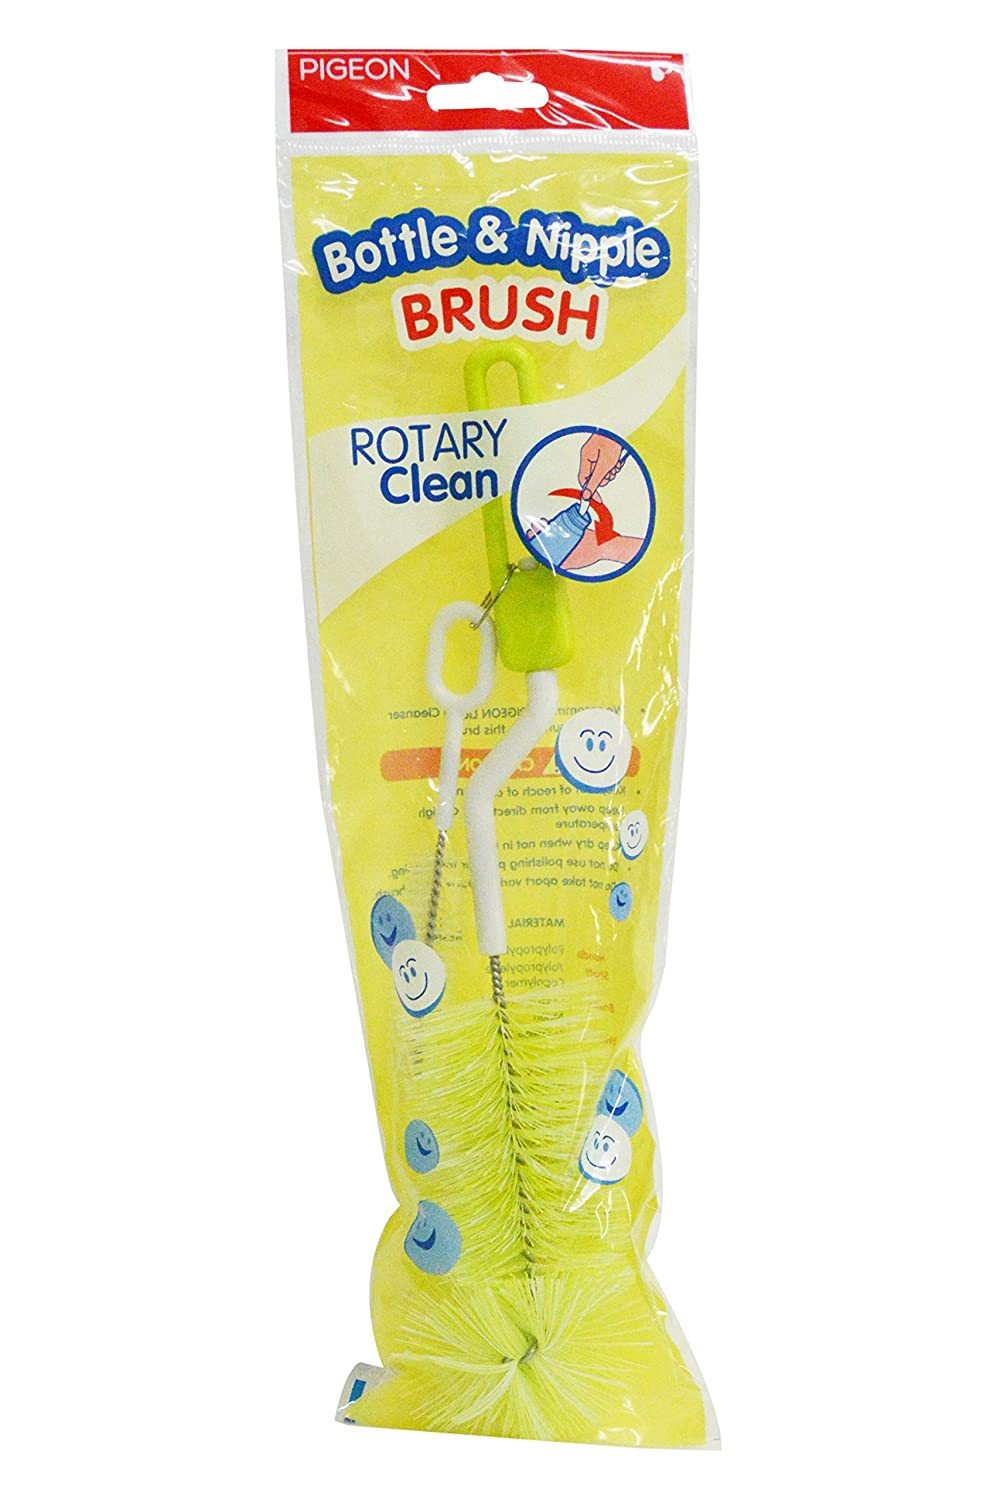 Pigeon Nylon Brush For Bottle And Nipple (Color May Vary)